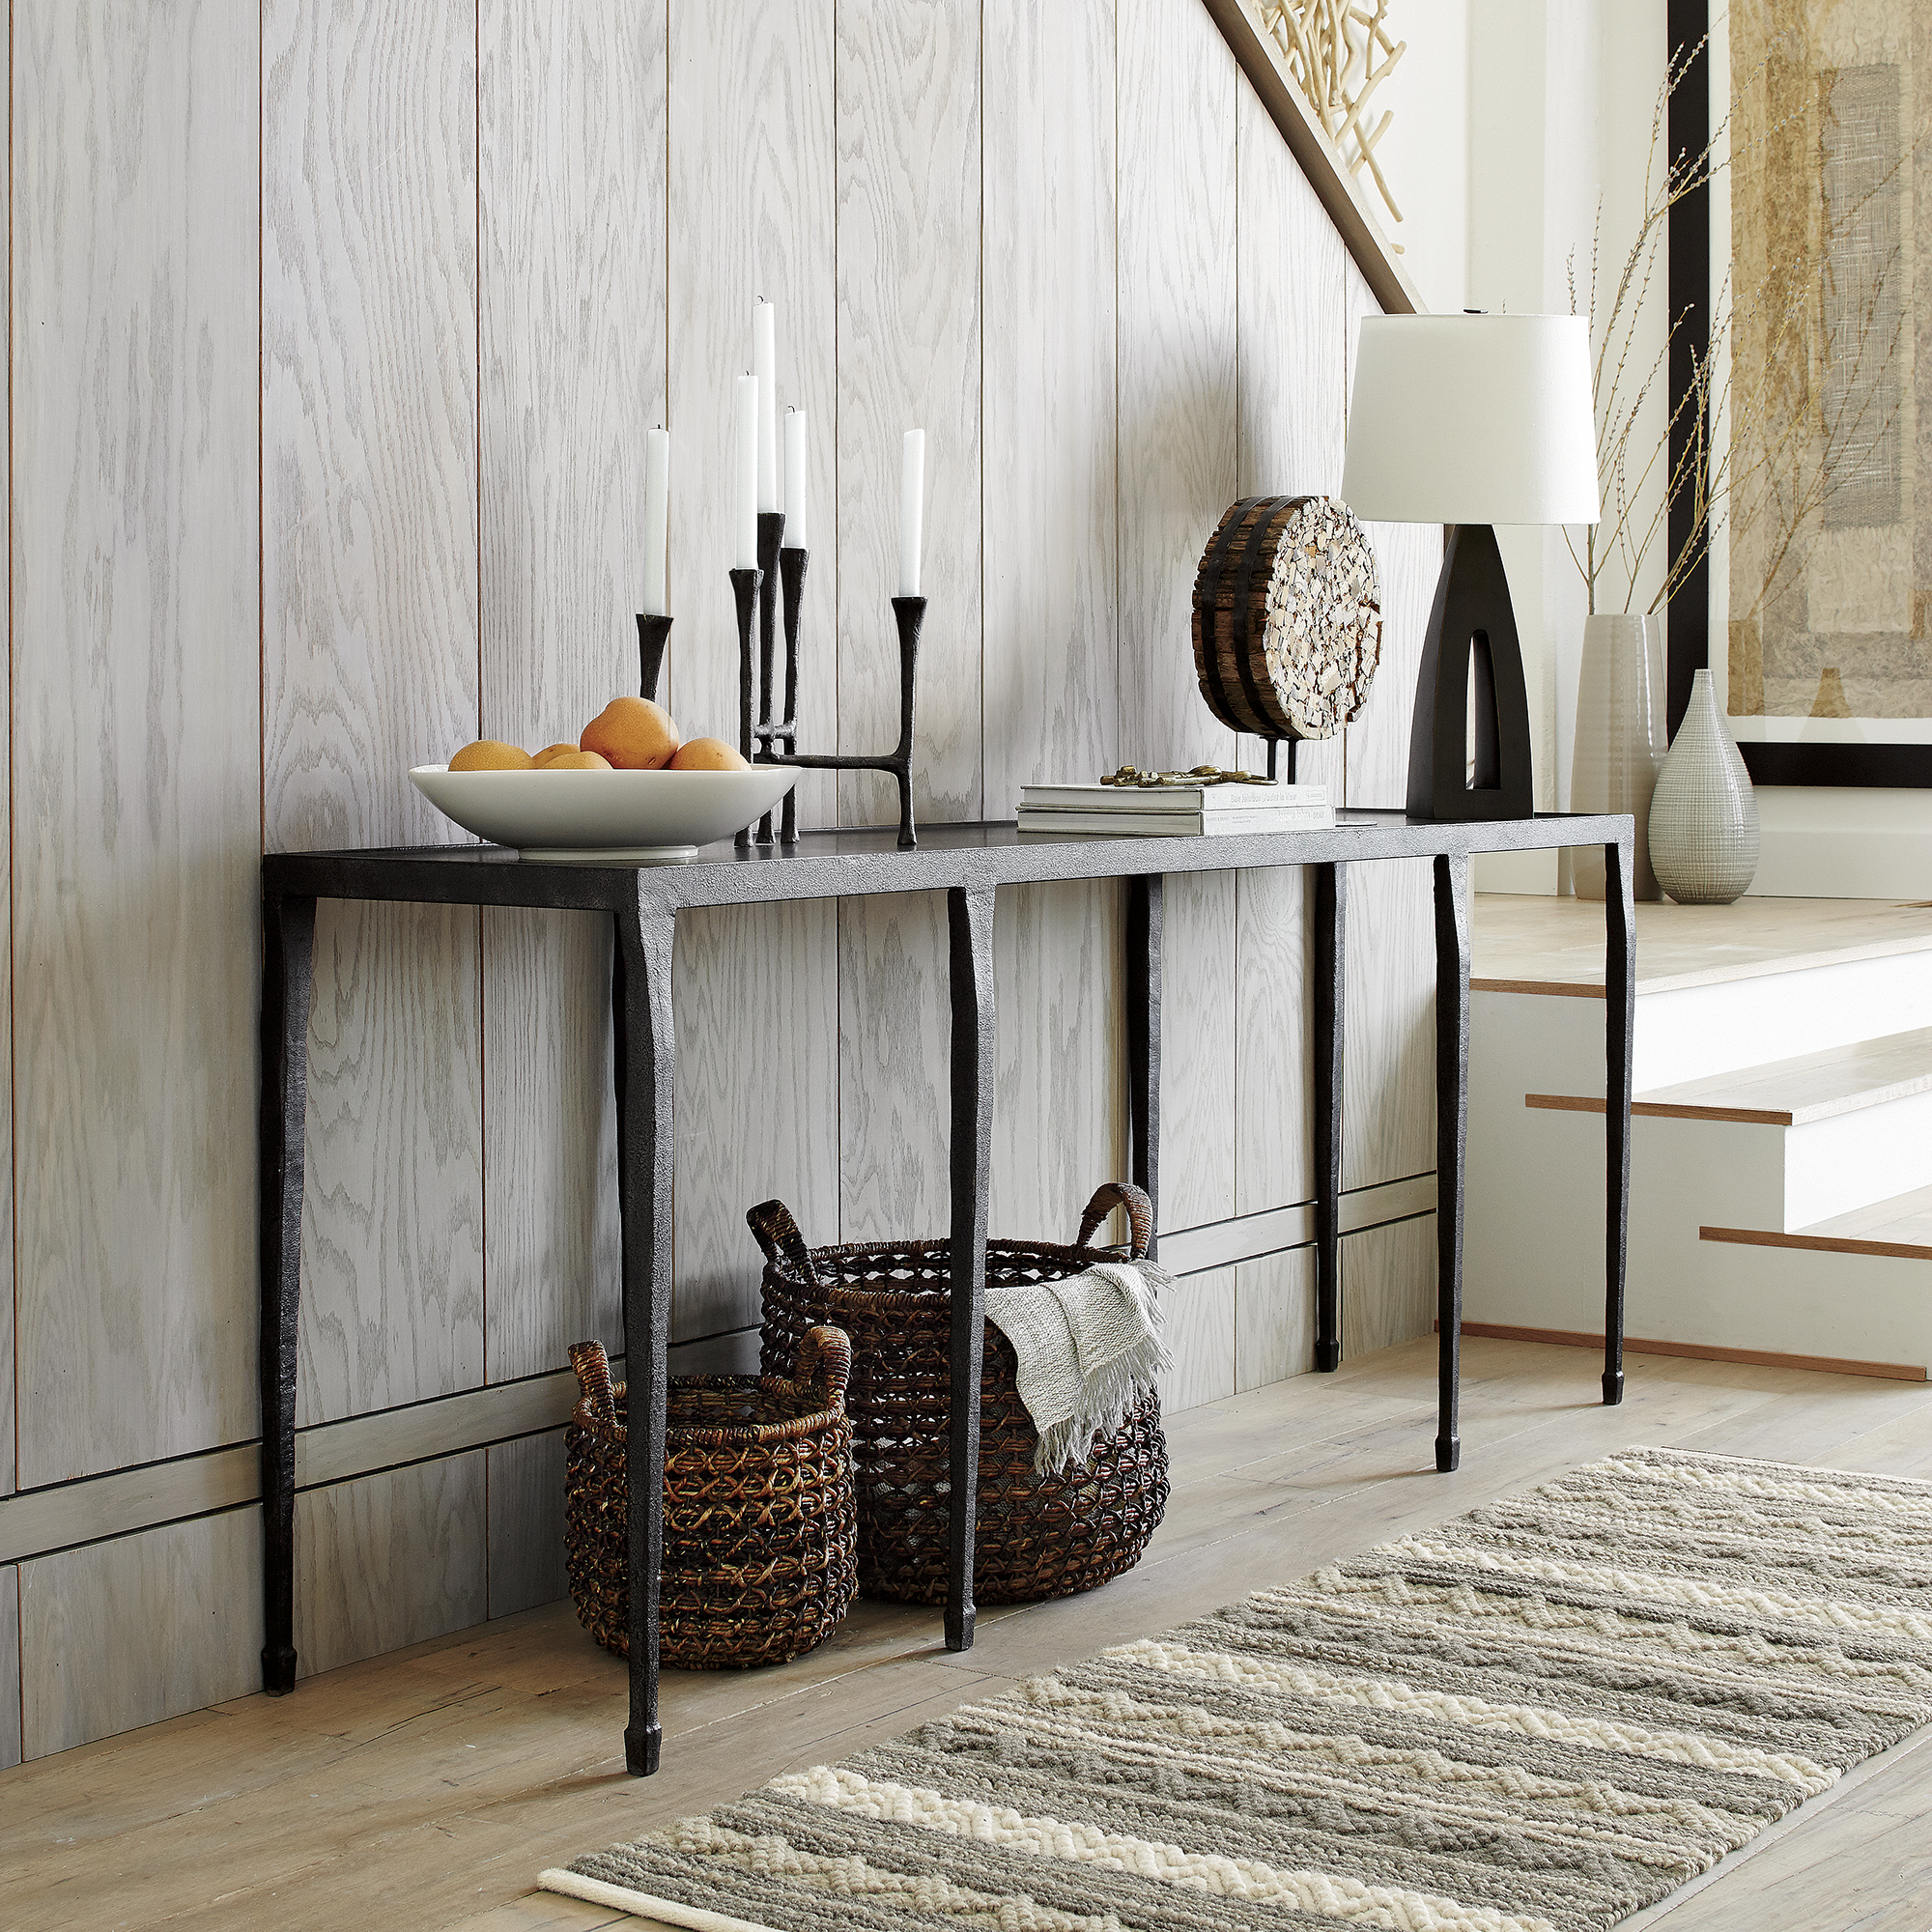 Inspired by 20th-century modernist art, Silviano refines the rustic character of cast iron on a grand scale, accented with sculptural detailing and the artisanal appeal of textured metal.